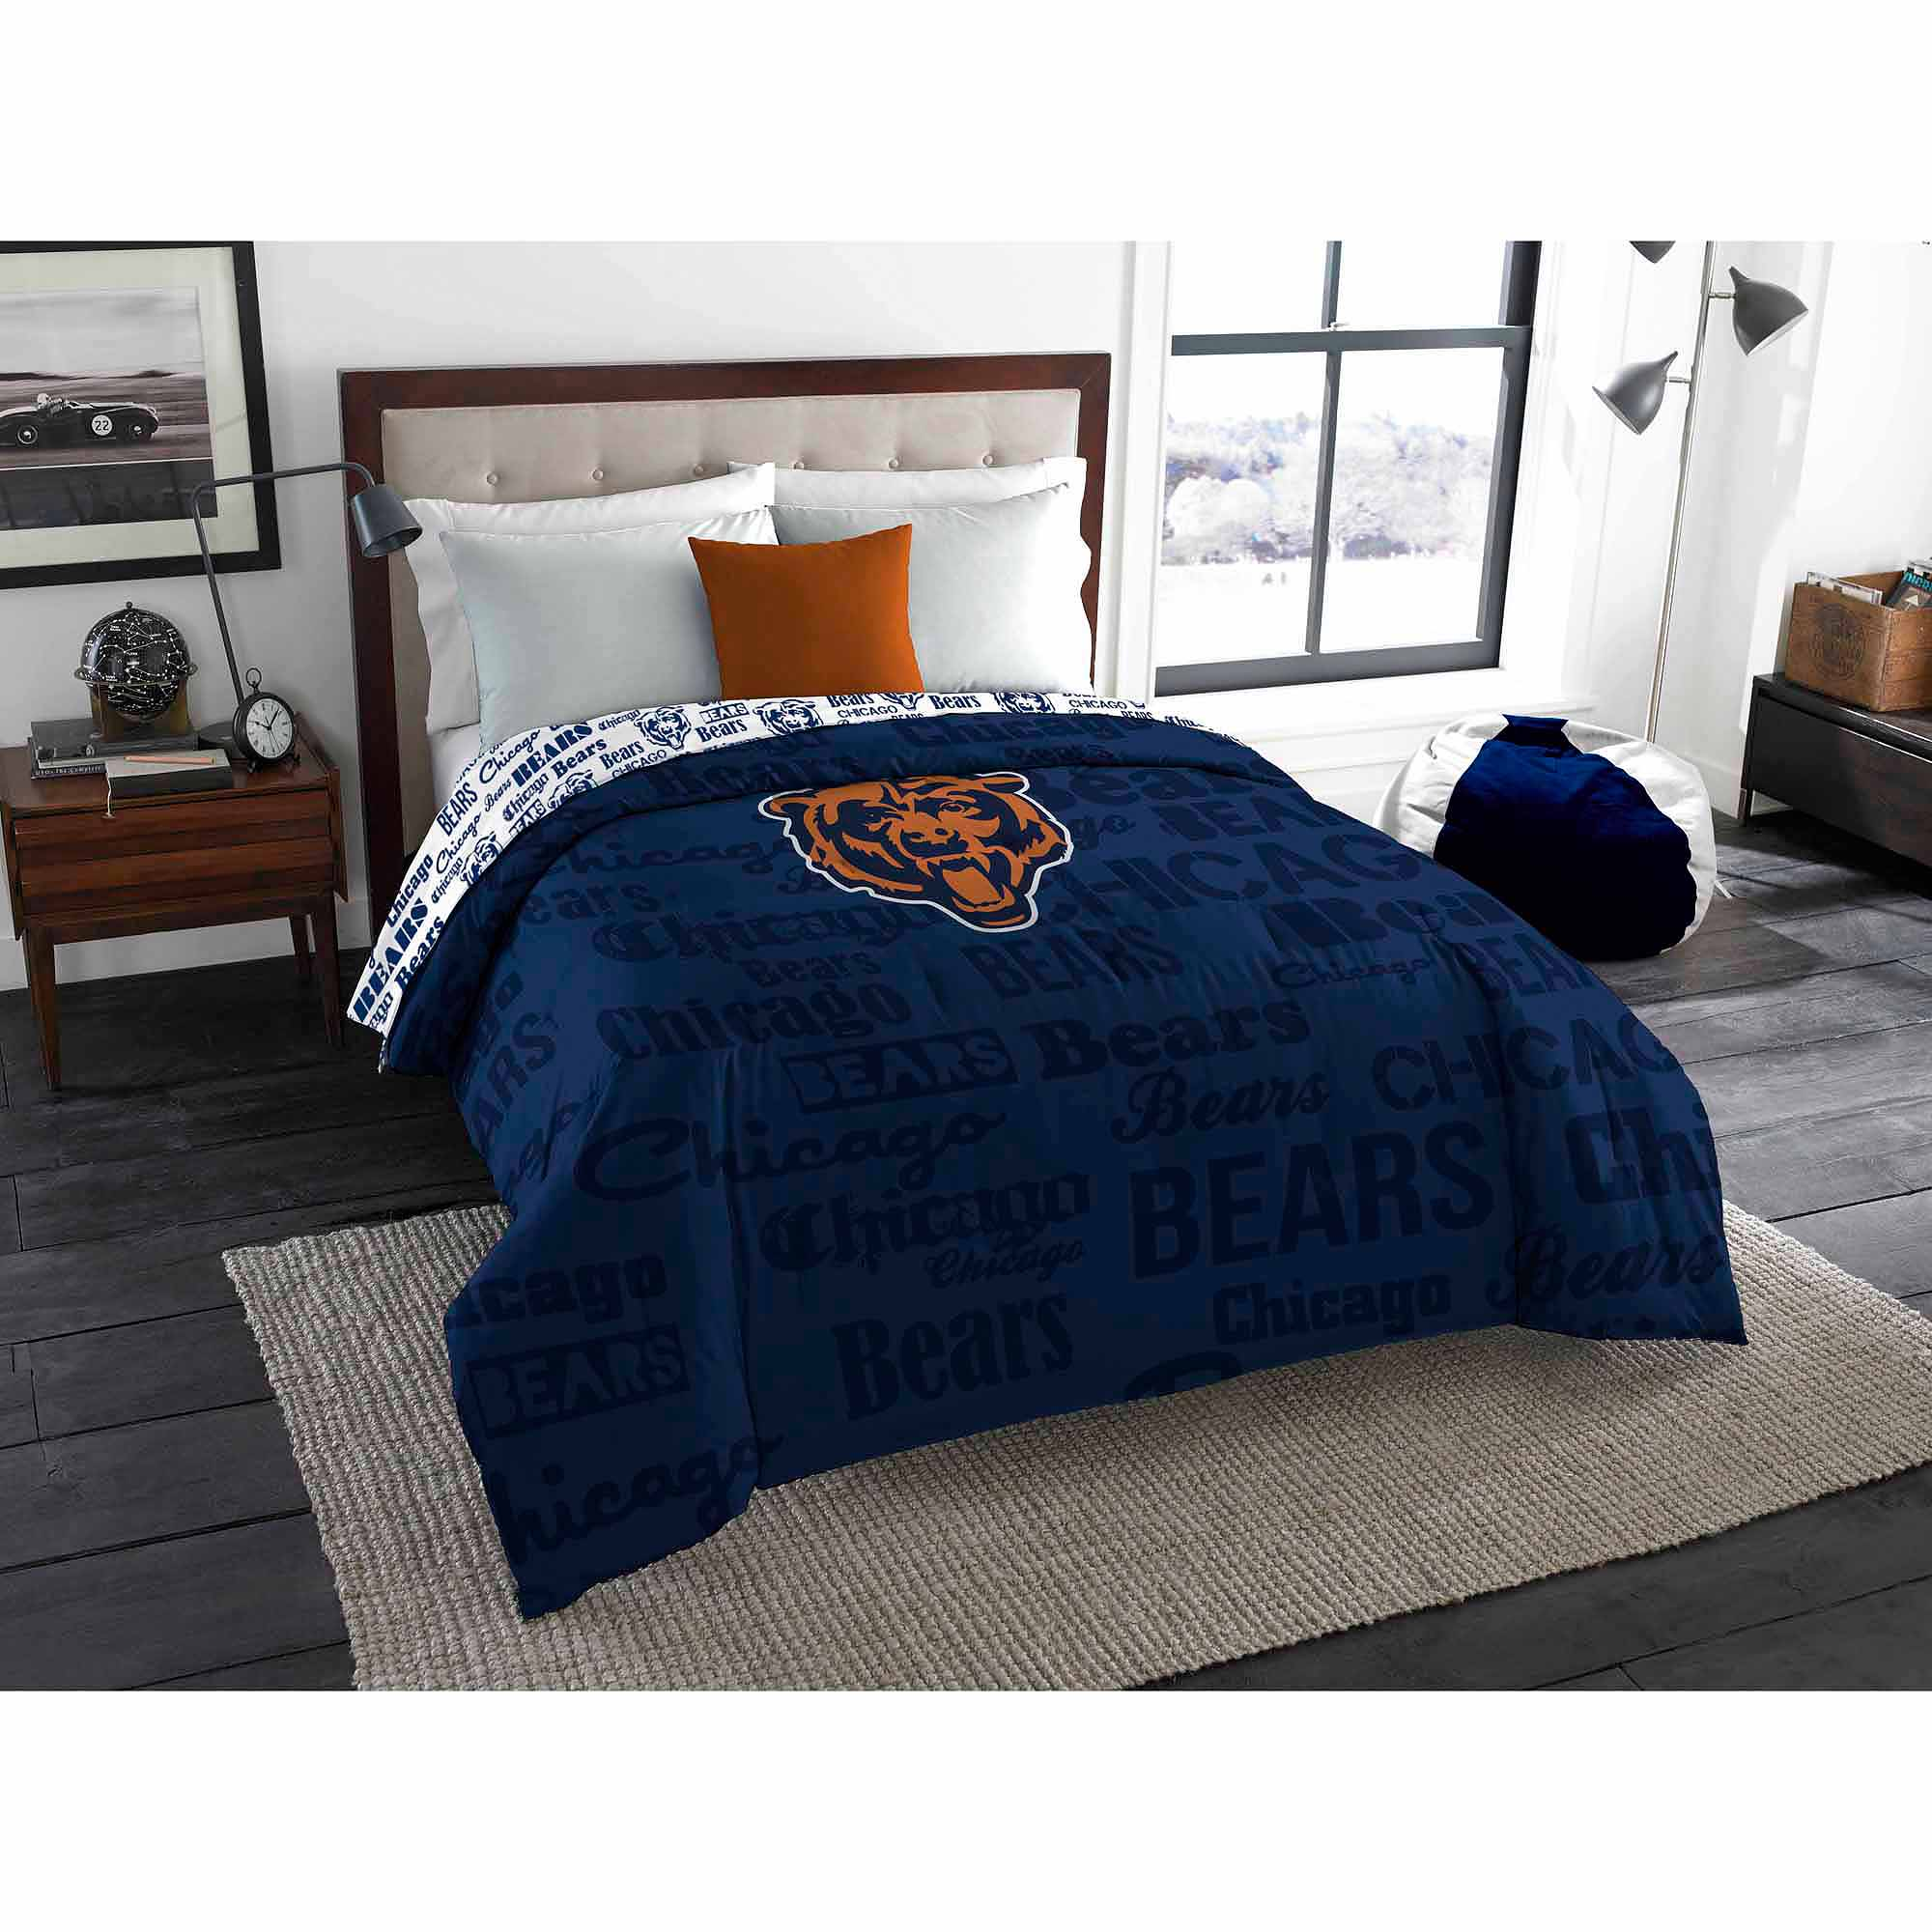 NFL Chicago Bears Twin/Full Bedding Comforter